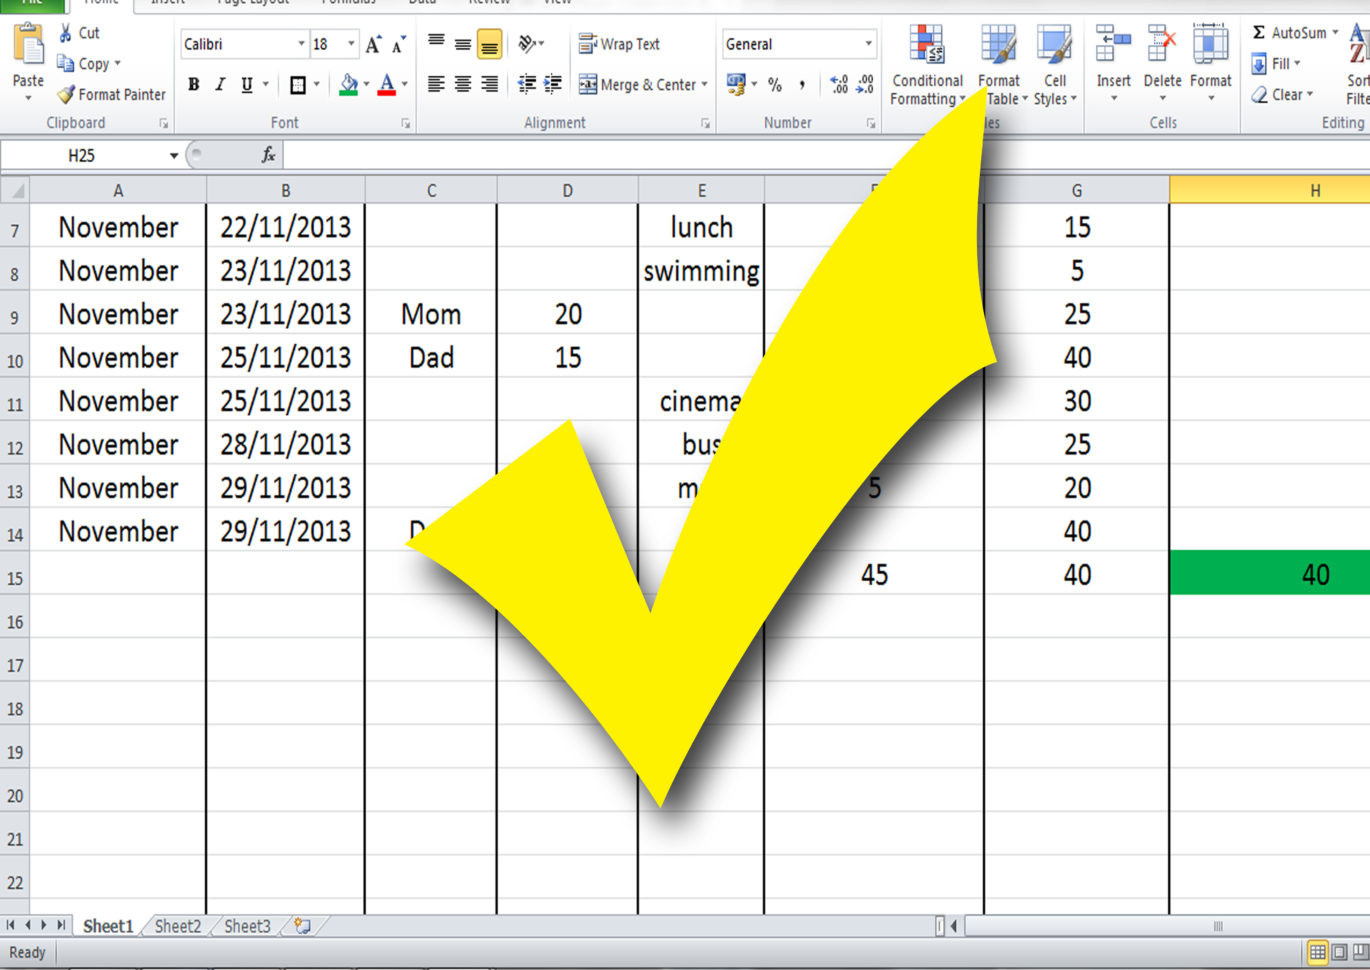 How To Set Up An Excel Spreadsheet For A Budget With How To Build A Budget Spreadsheet Teenagers: 13 Steps